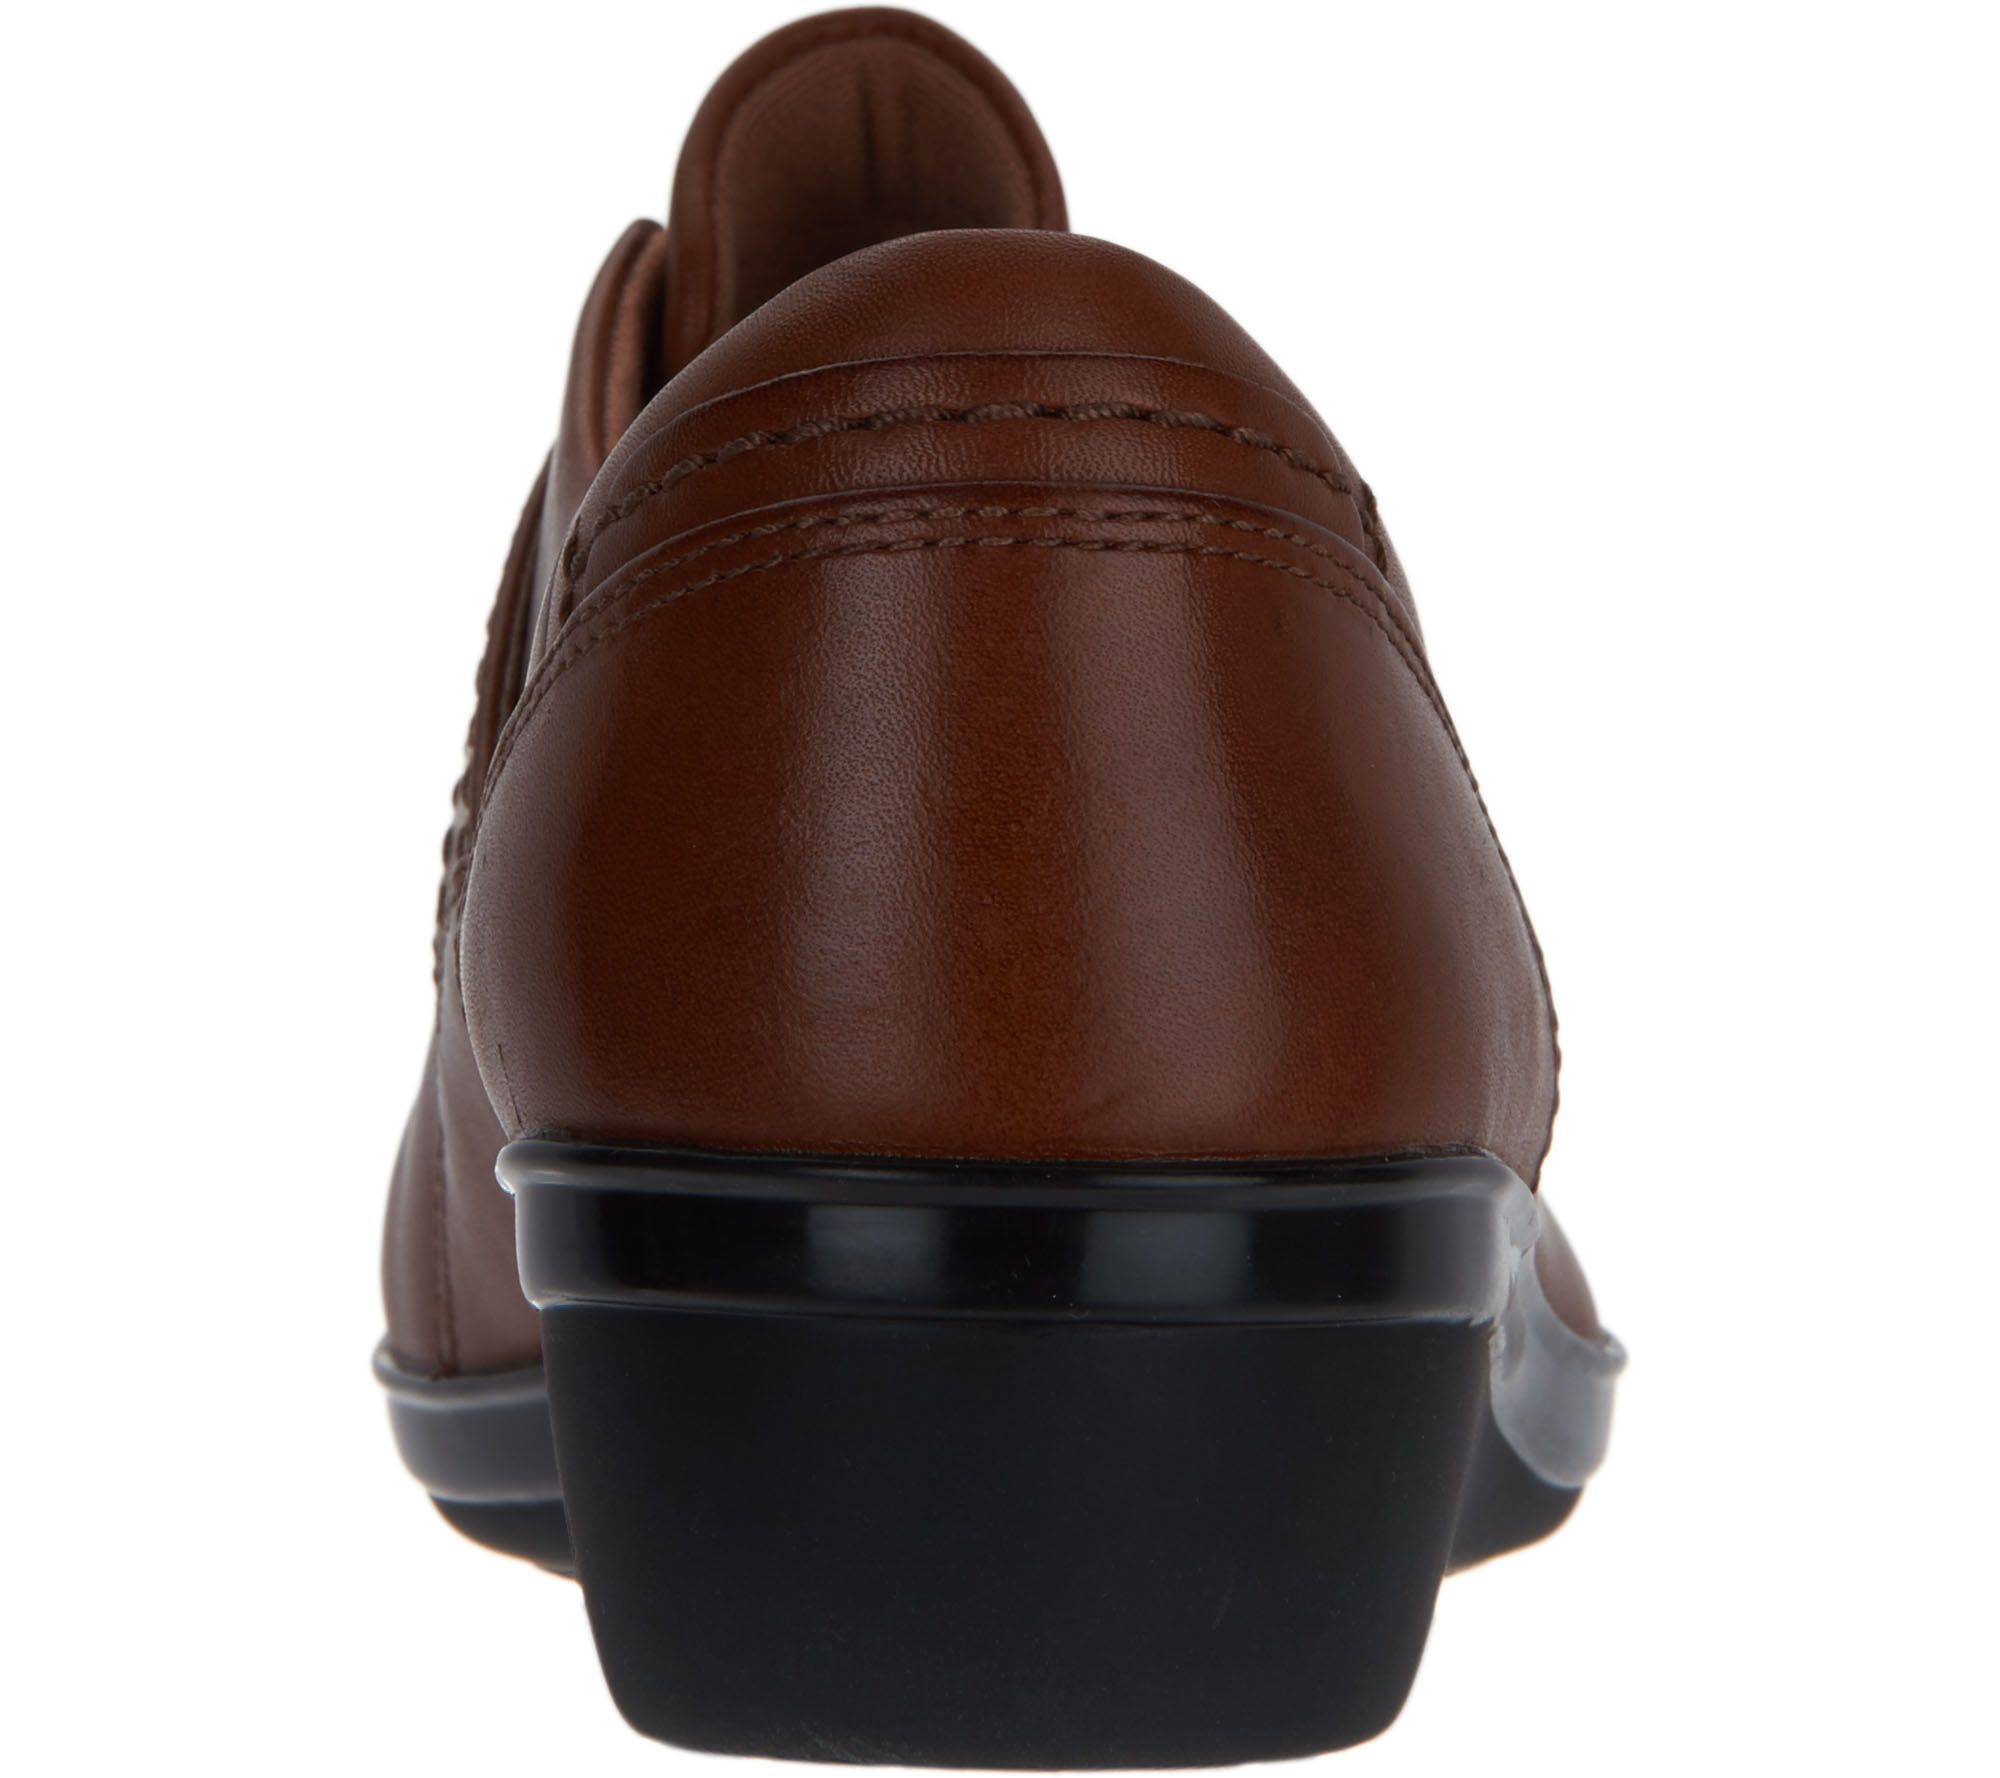 f599b69276489 Clarks Collection Leather Monk Strap Shoes - Everlay Dixie — QVC.com